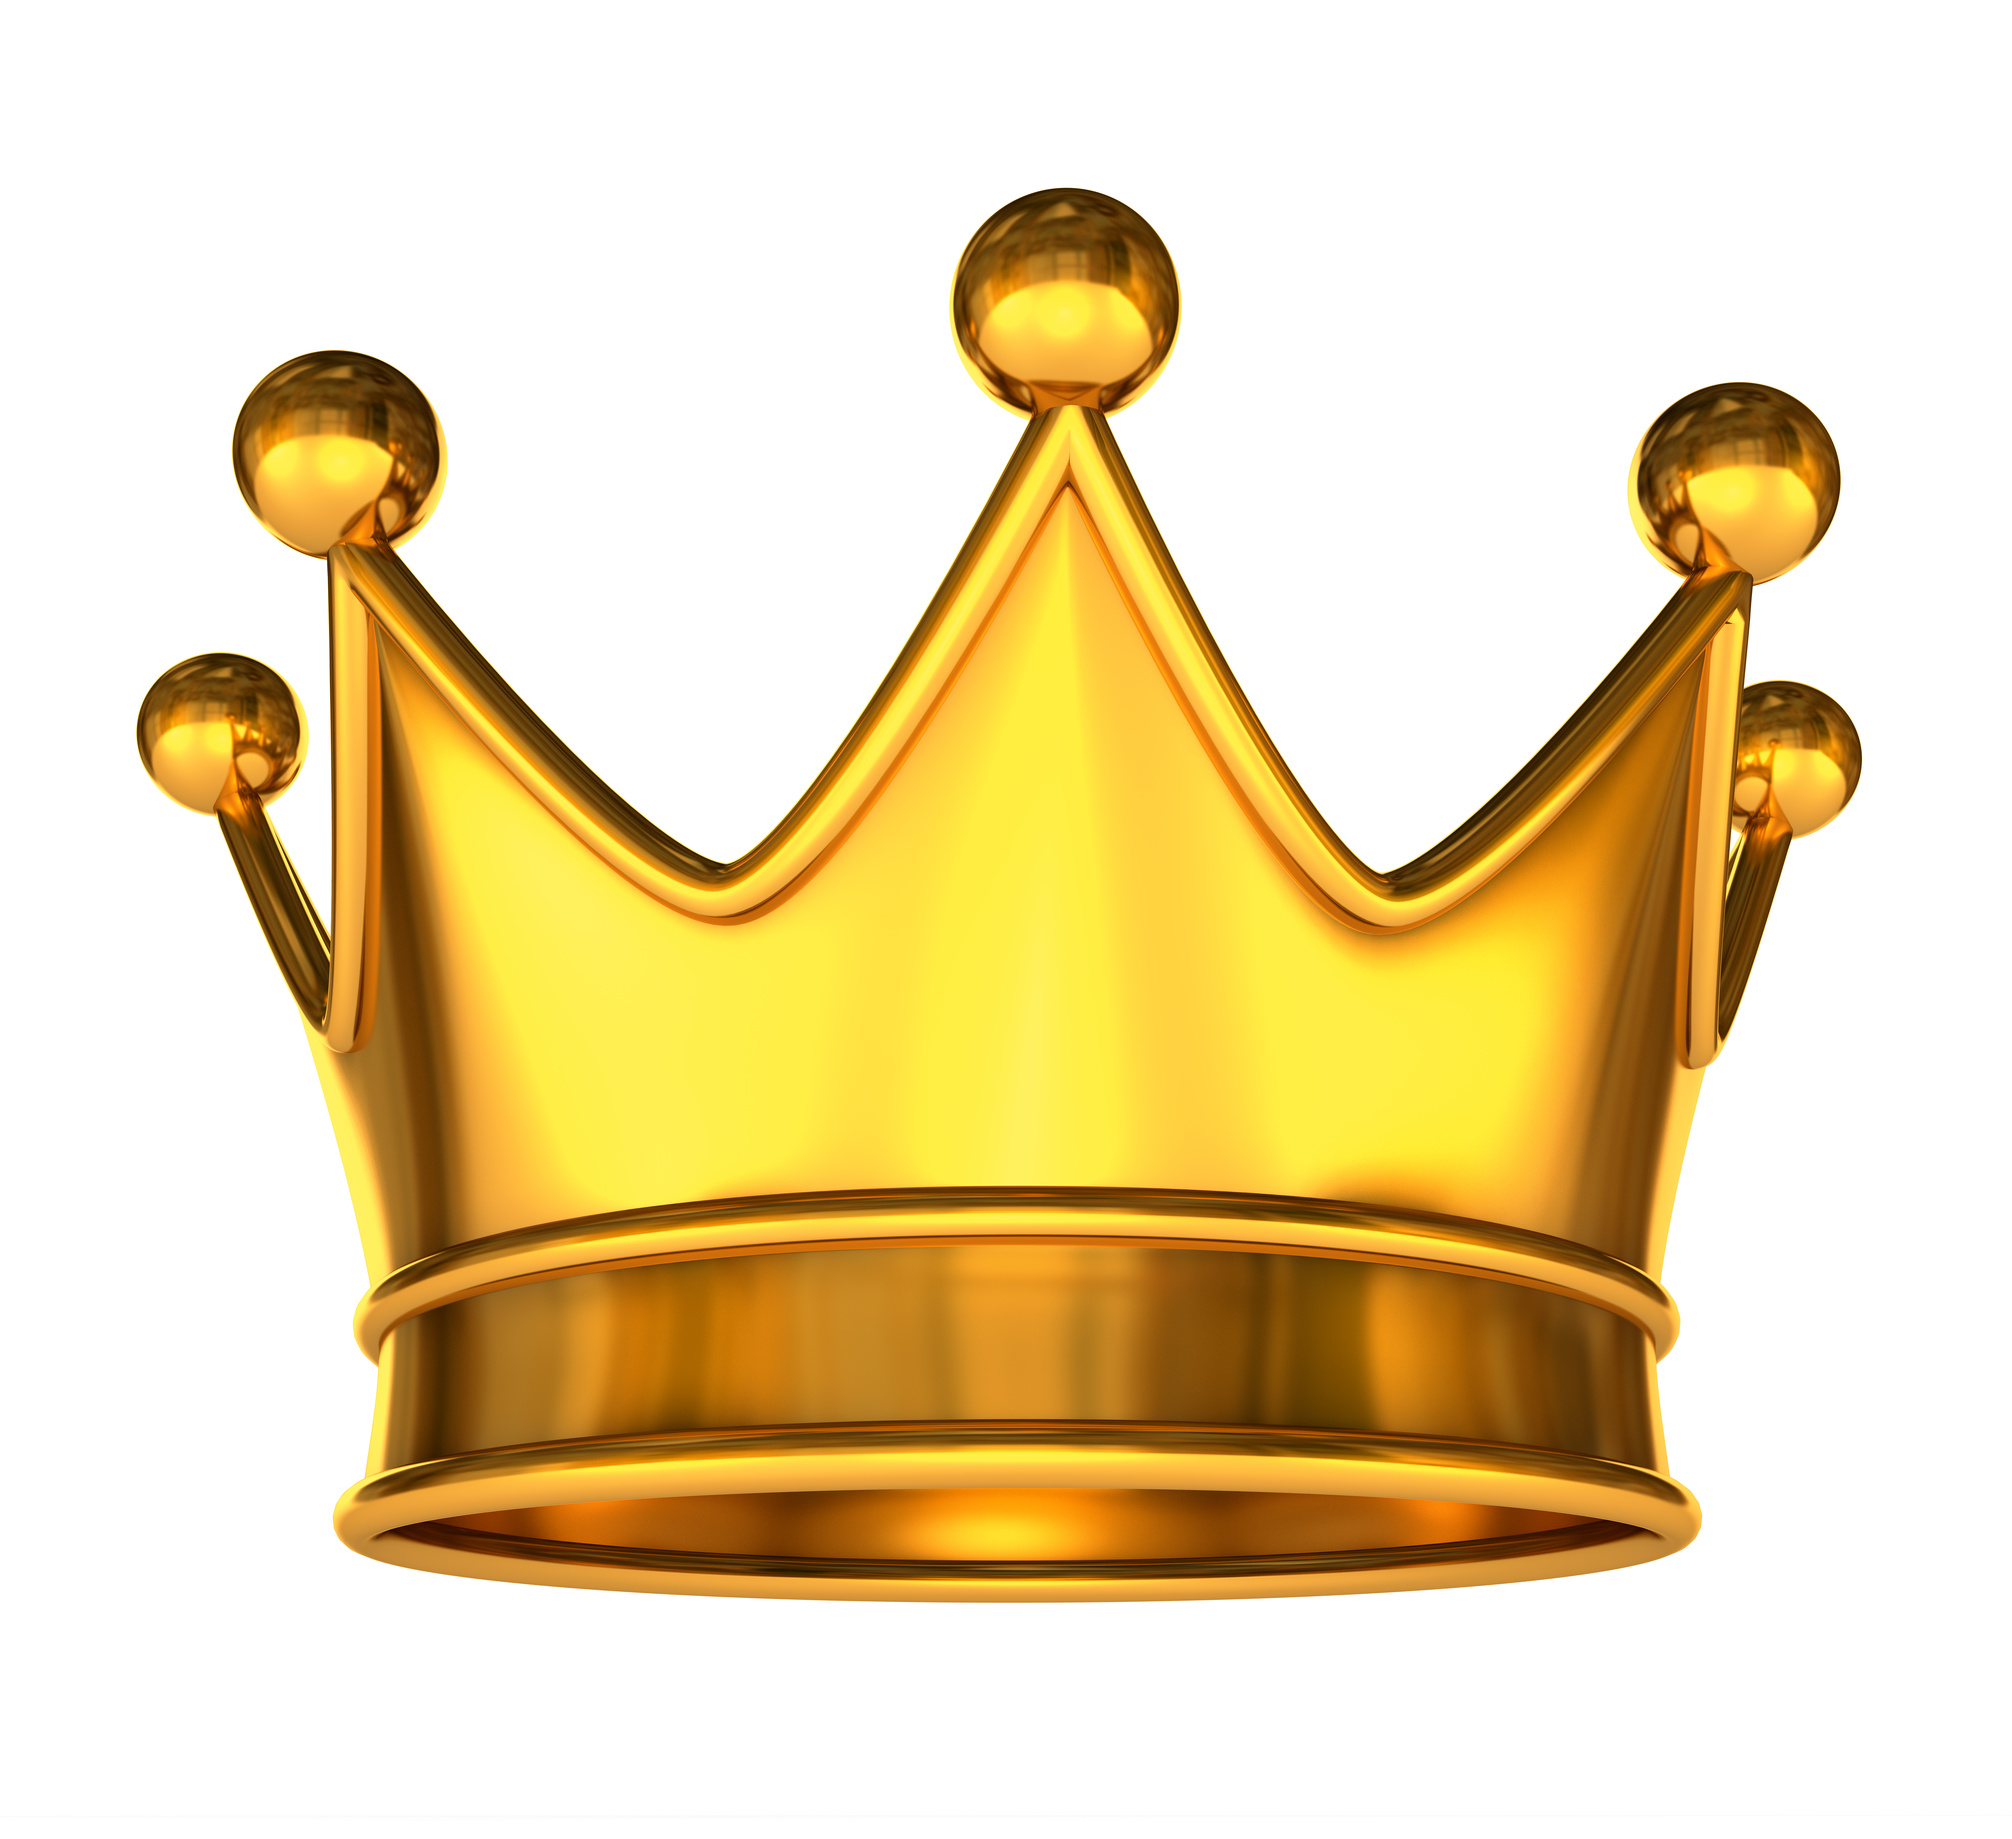 gold crown king clipart 20 free cliparts